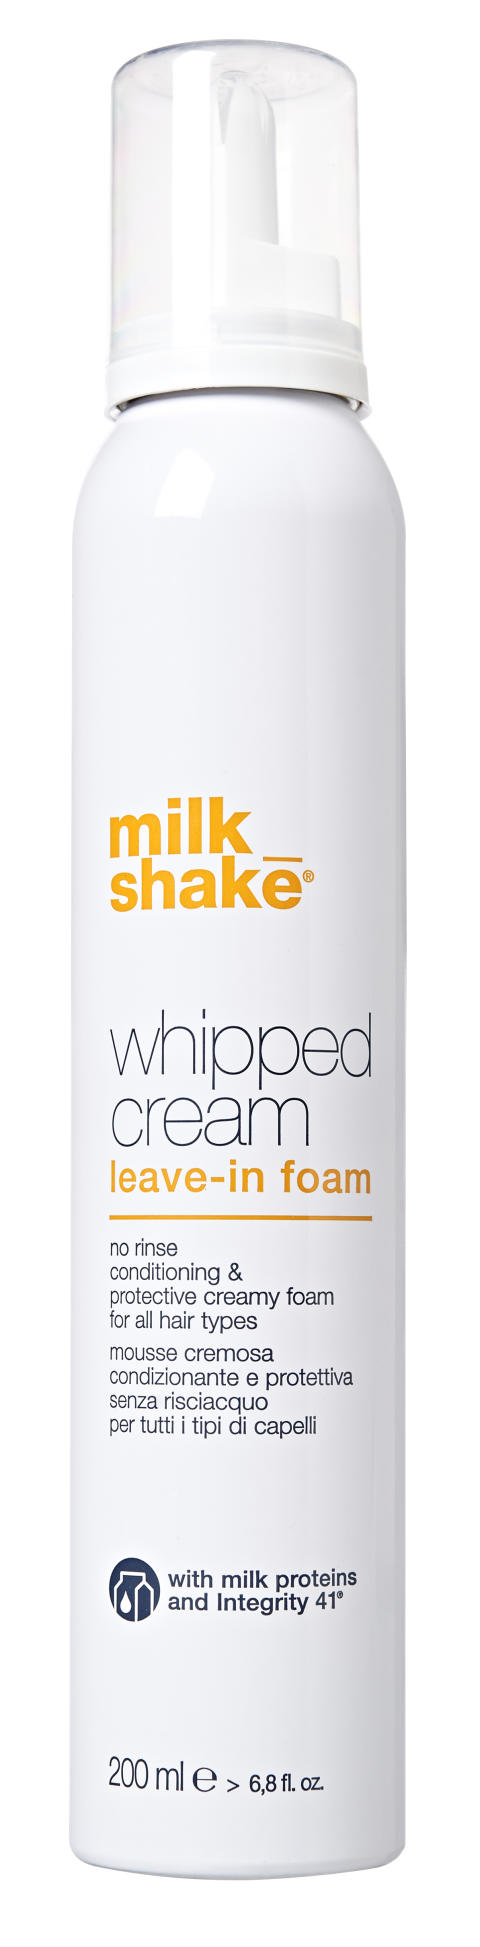 MS LEAVE IN Whipped cream 200ml